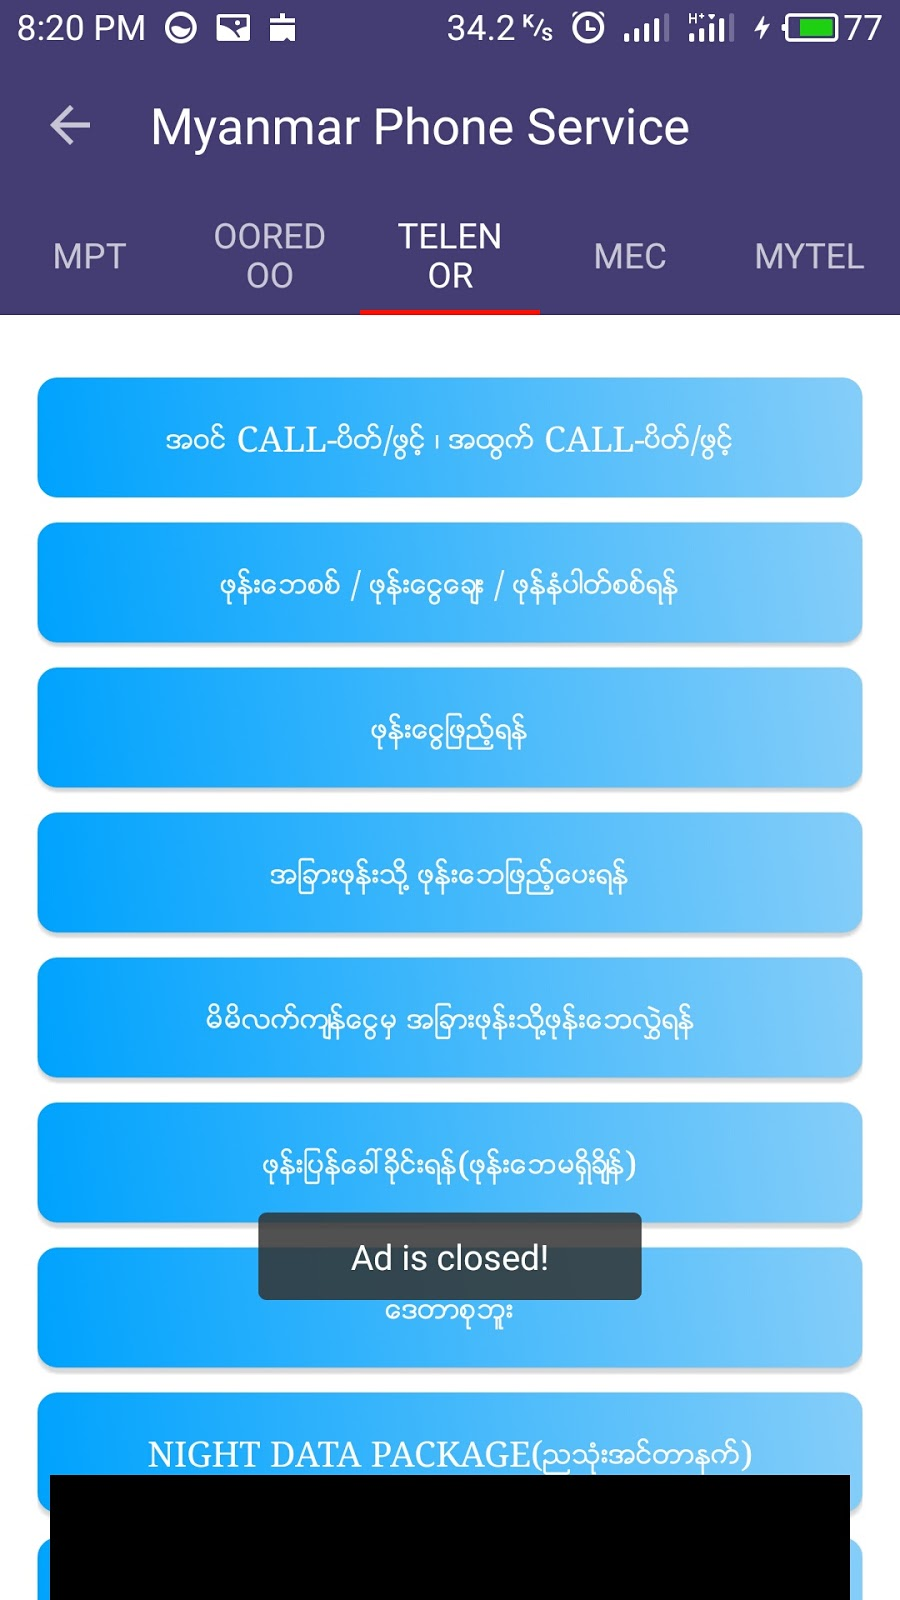 Apg Application: Myanmar Phone Service Application